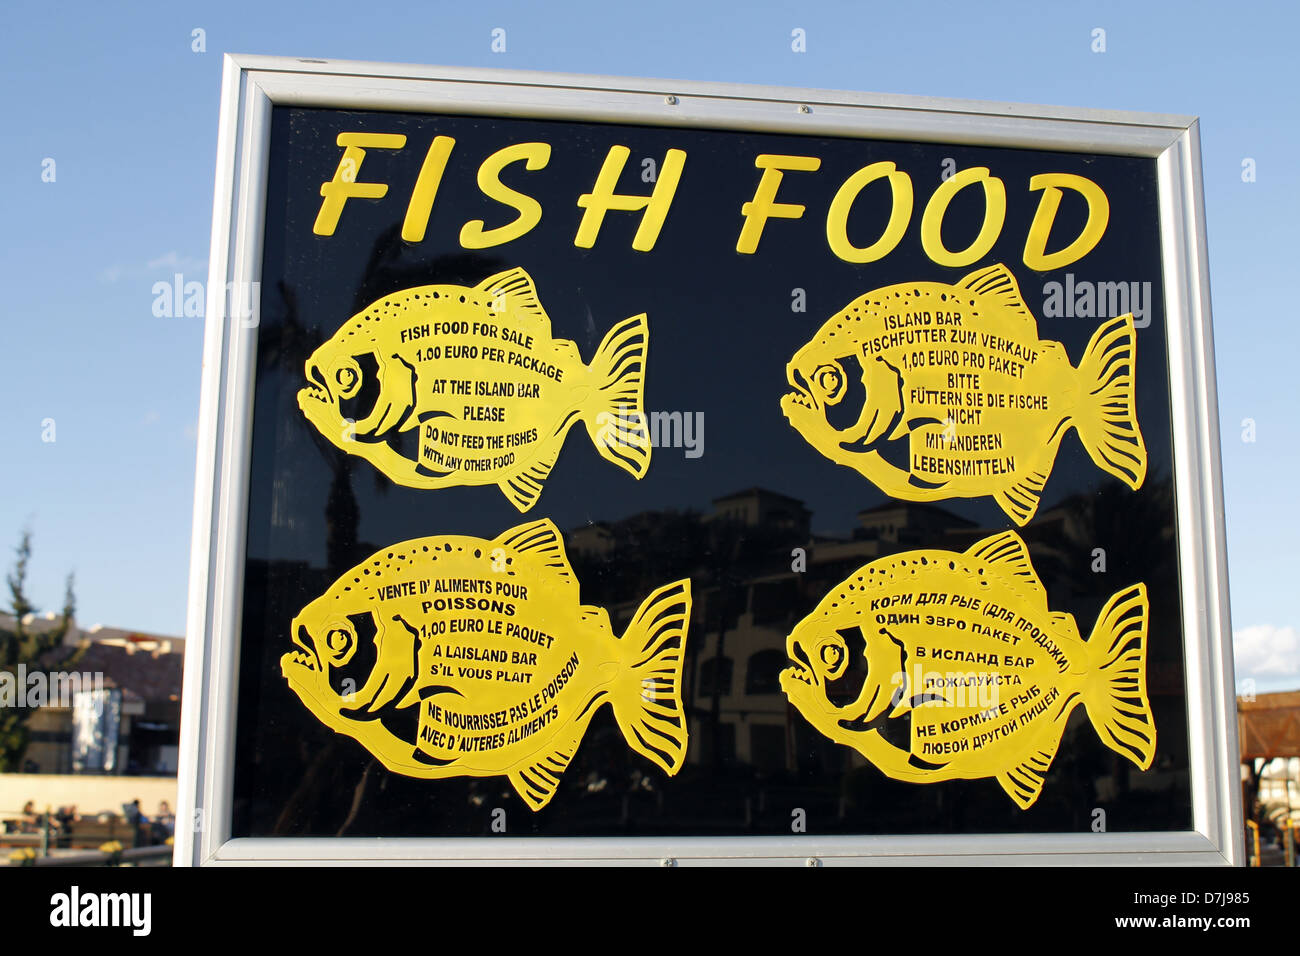 FISH FOOD SIGN IN 4 LANGUAGES HURGHADA EGYPT 06 January 2013 - Stock Image